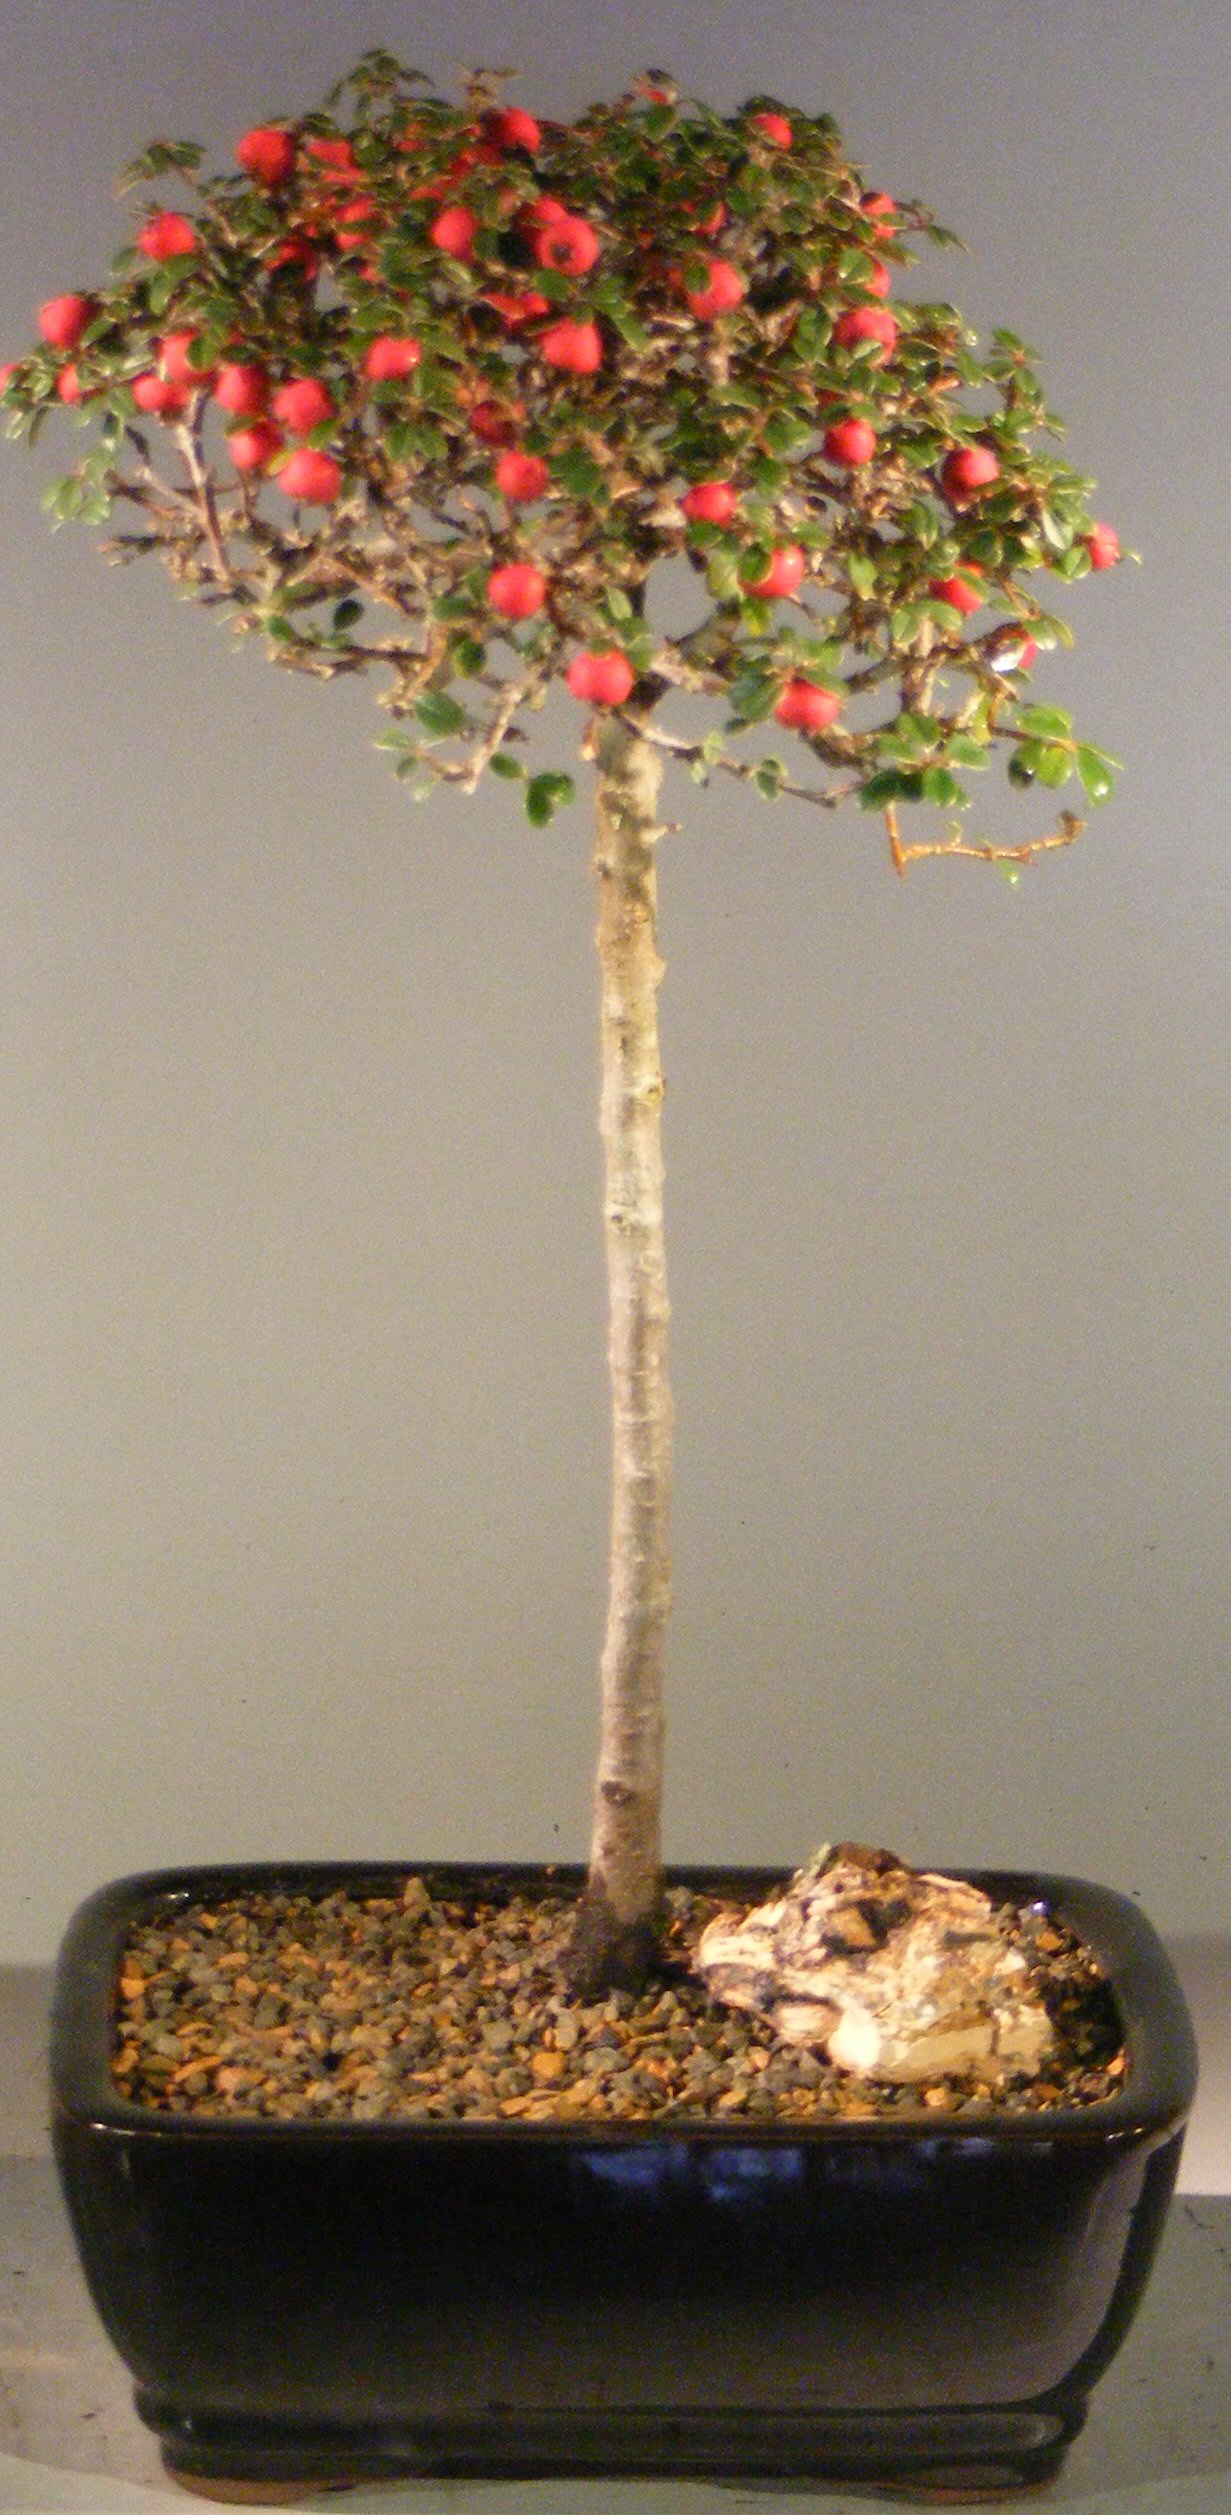 Flowering & Fruiting Evergreen Cotoneaster Bonsai Tree Upright Style(dammeri 'streibs findling') Image